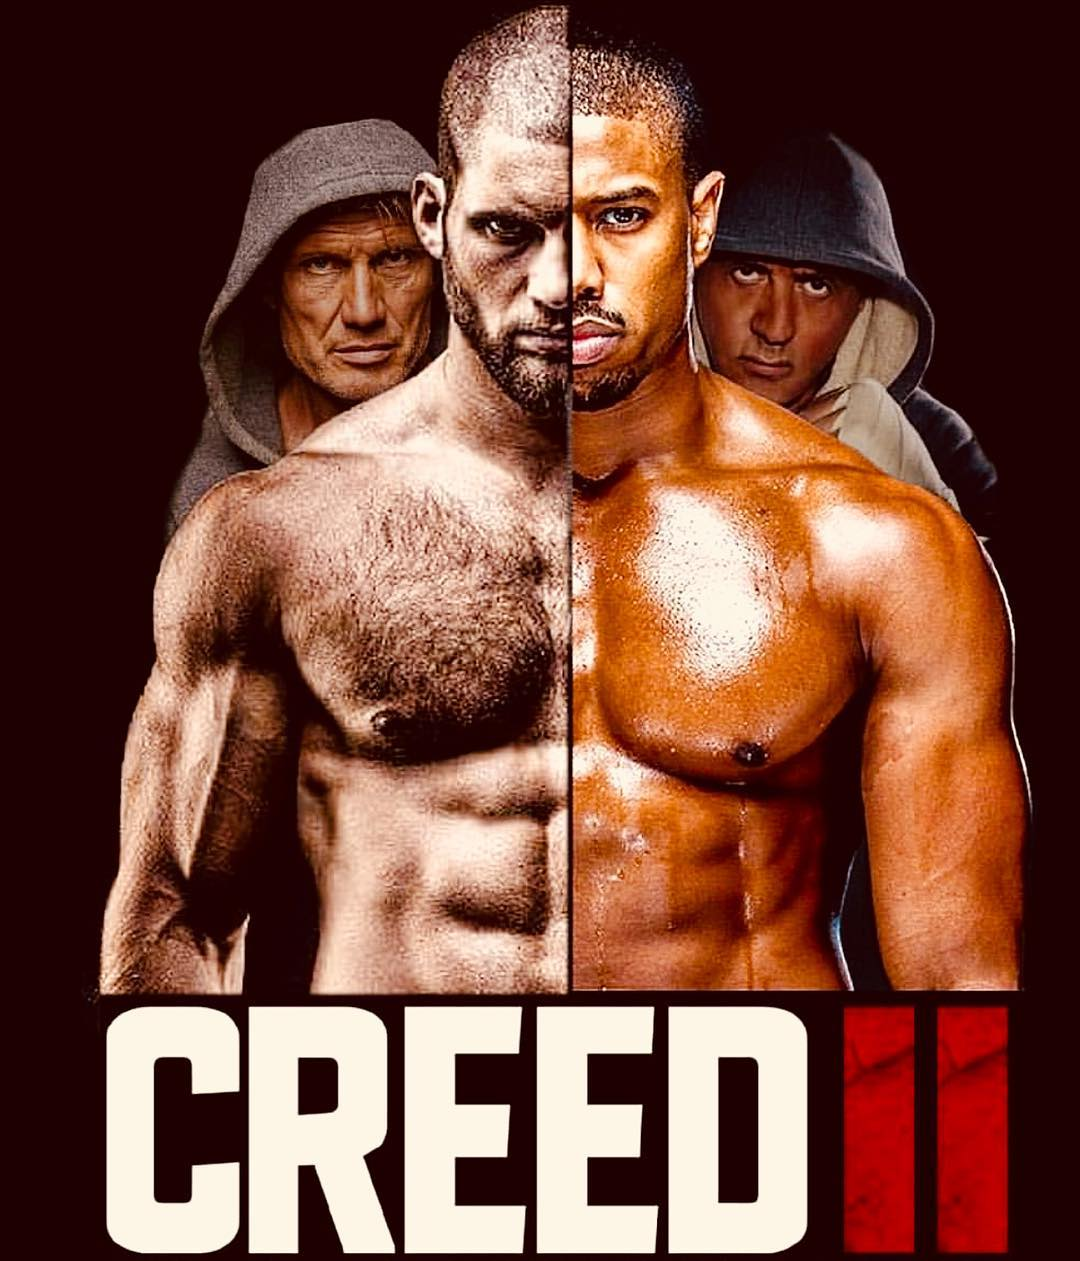 filmes-esperados-creed-ii